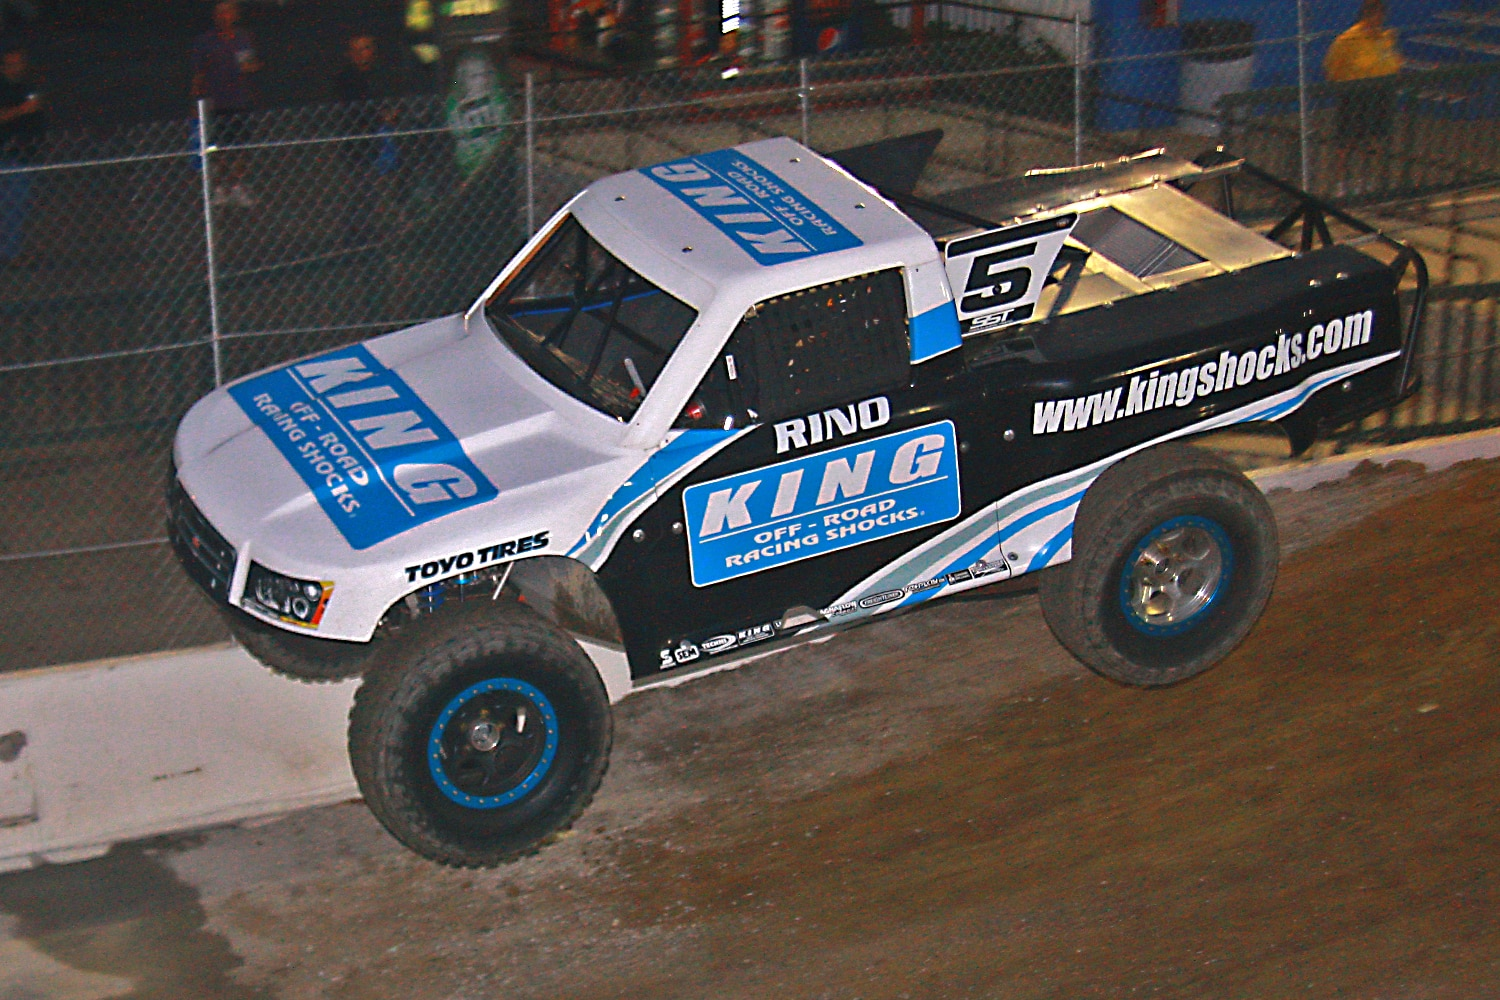 Off Road Race Truck   52  King Shocks SST Truck Jump